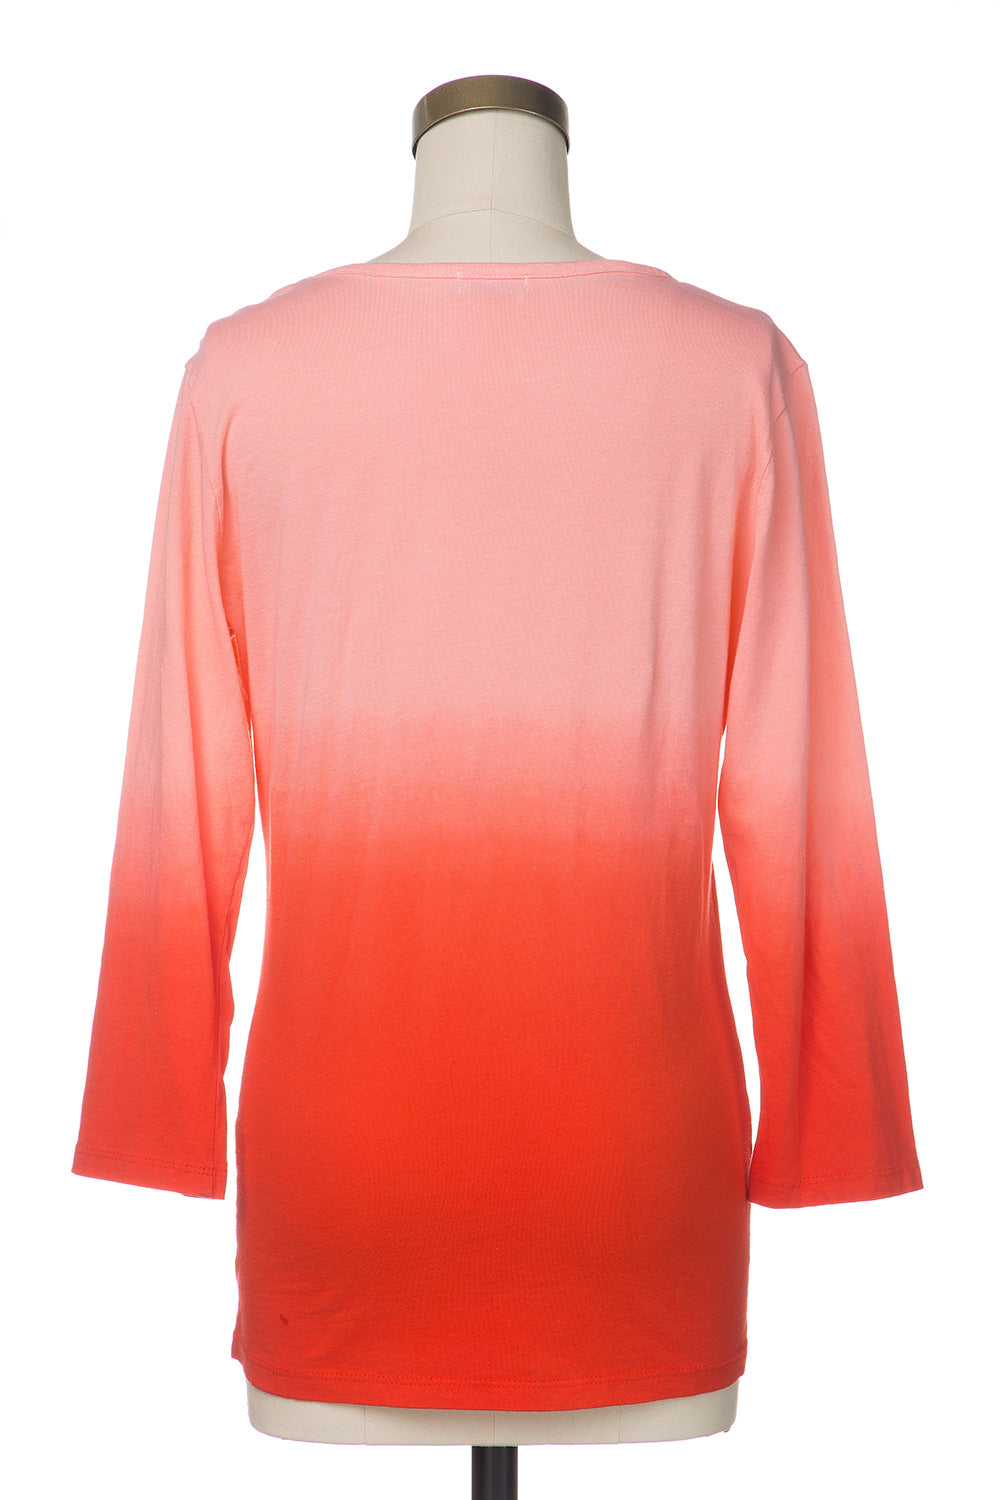 Type 3 Coral Ombre Top